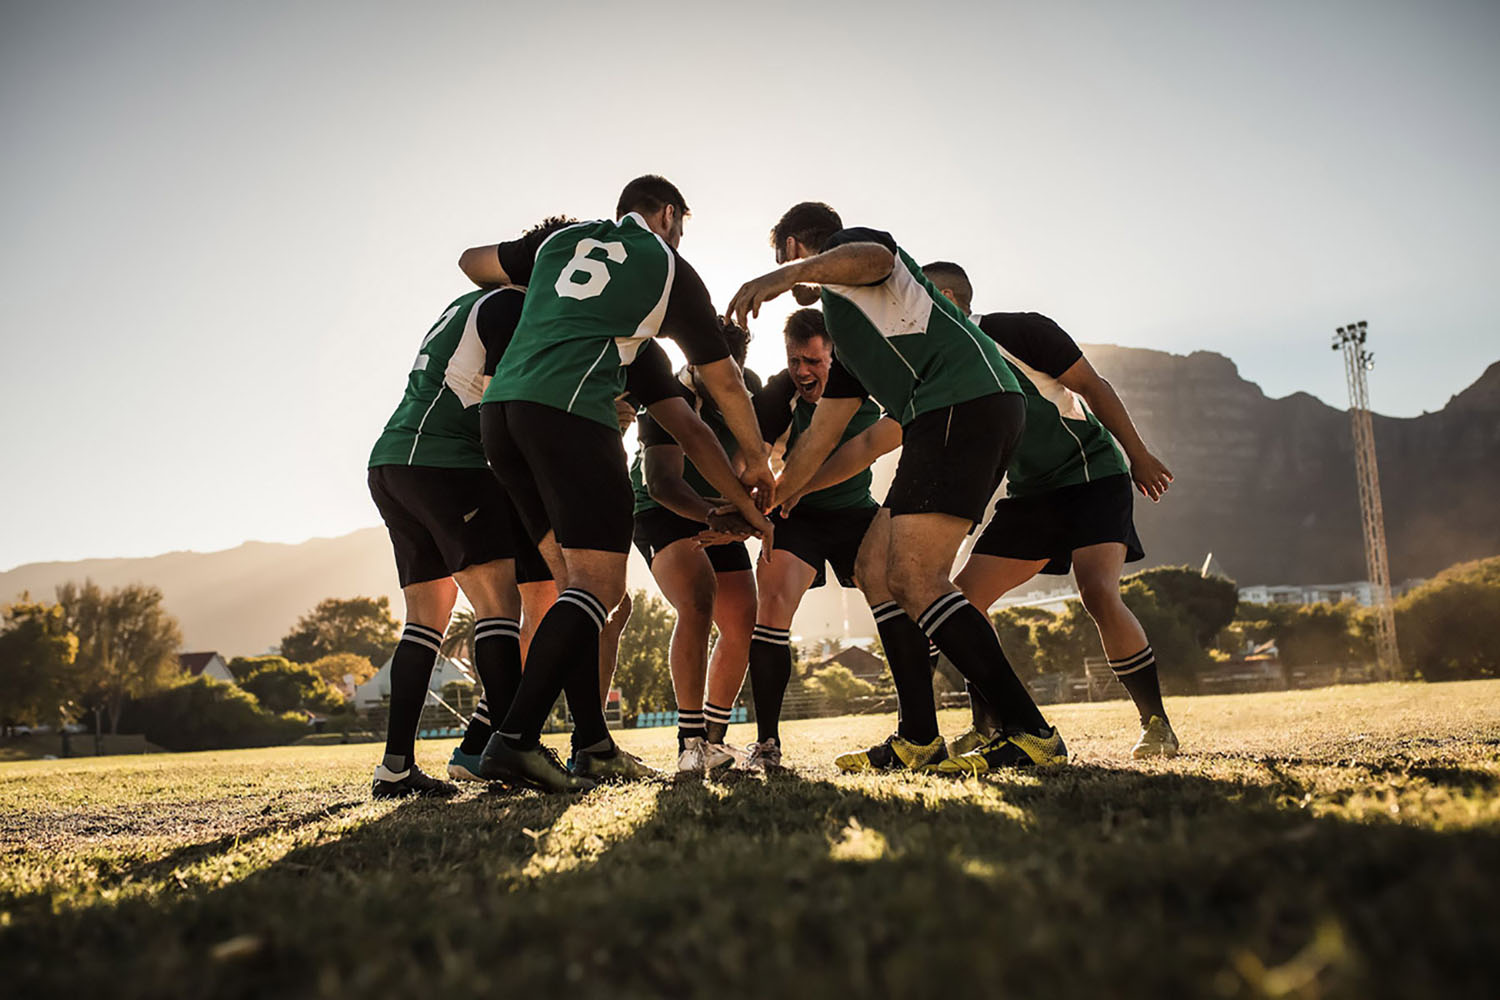 Rugby players gather in a scrum before the start of a match